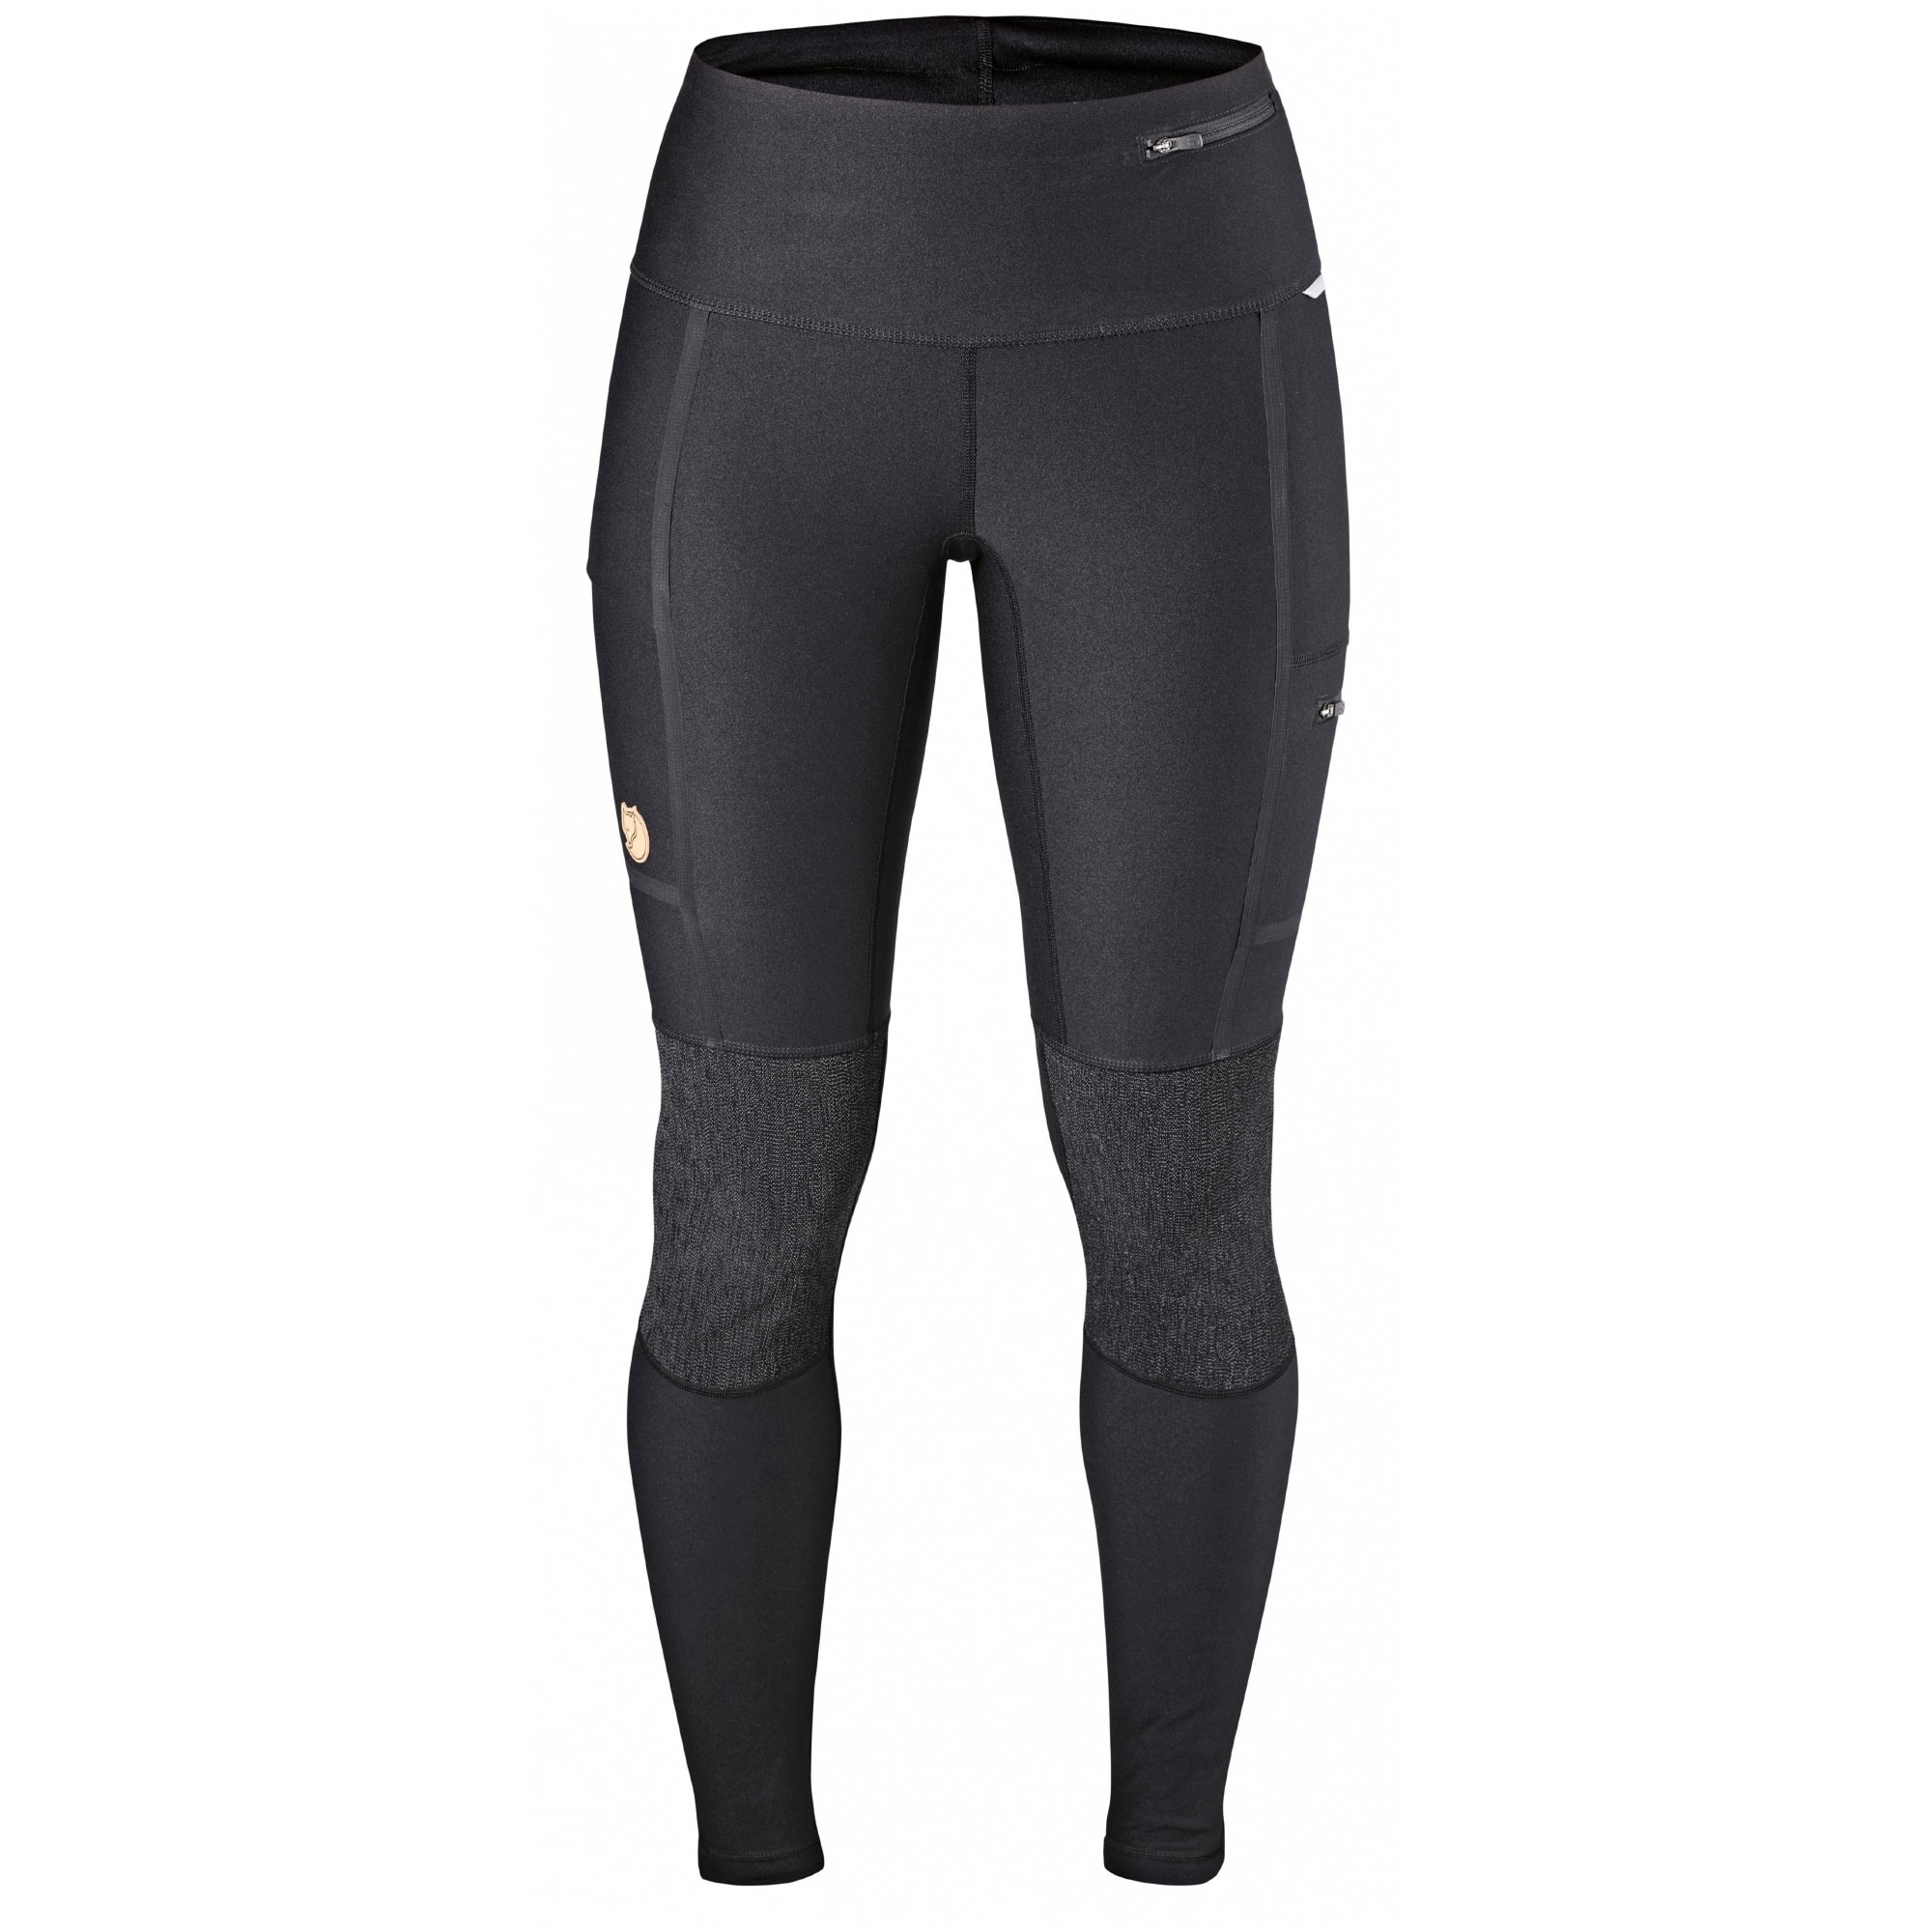 Fjallraven Abisko Women's Trekking Tights - Black